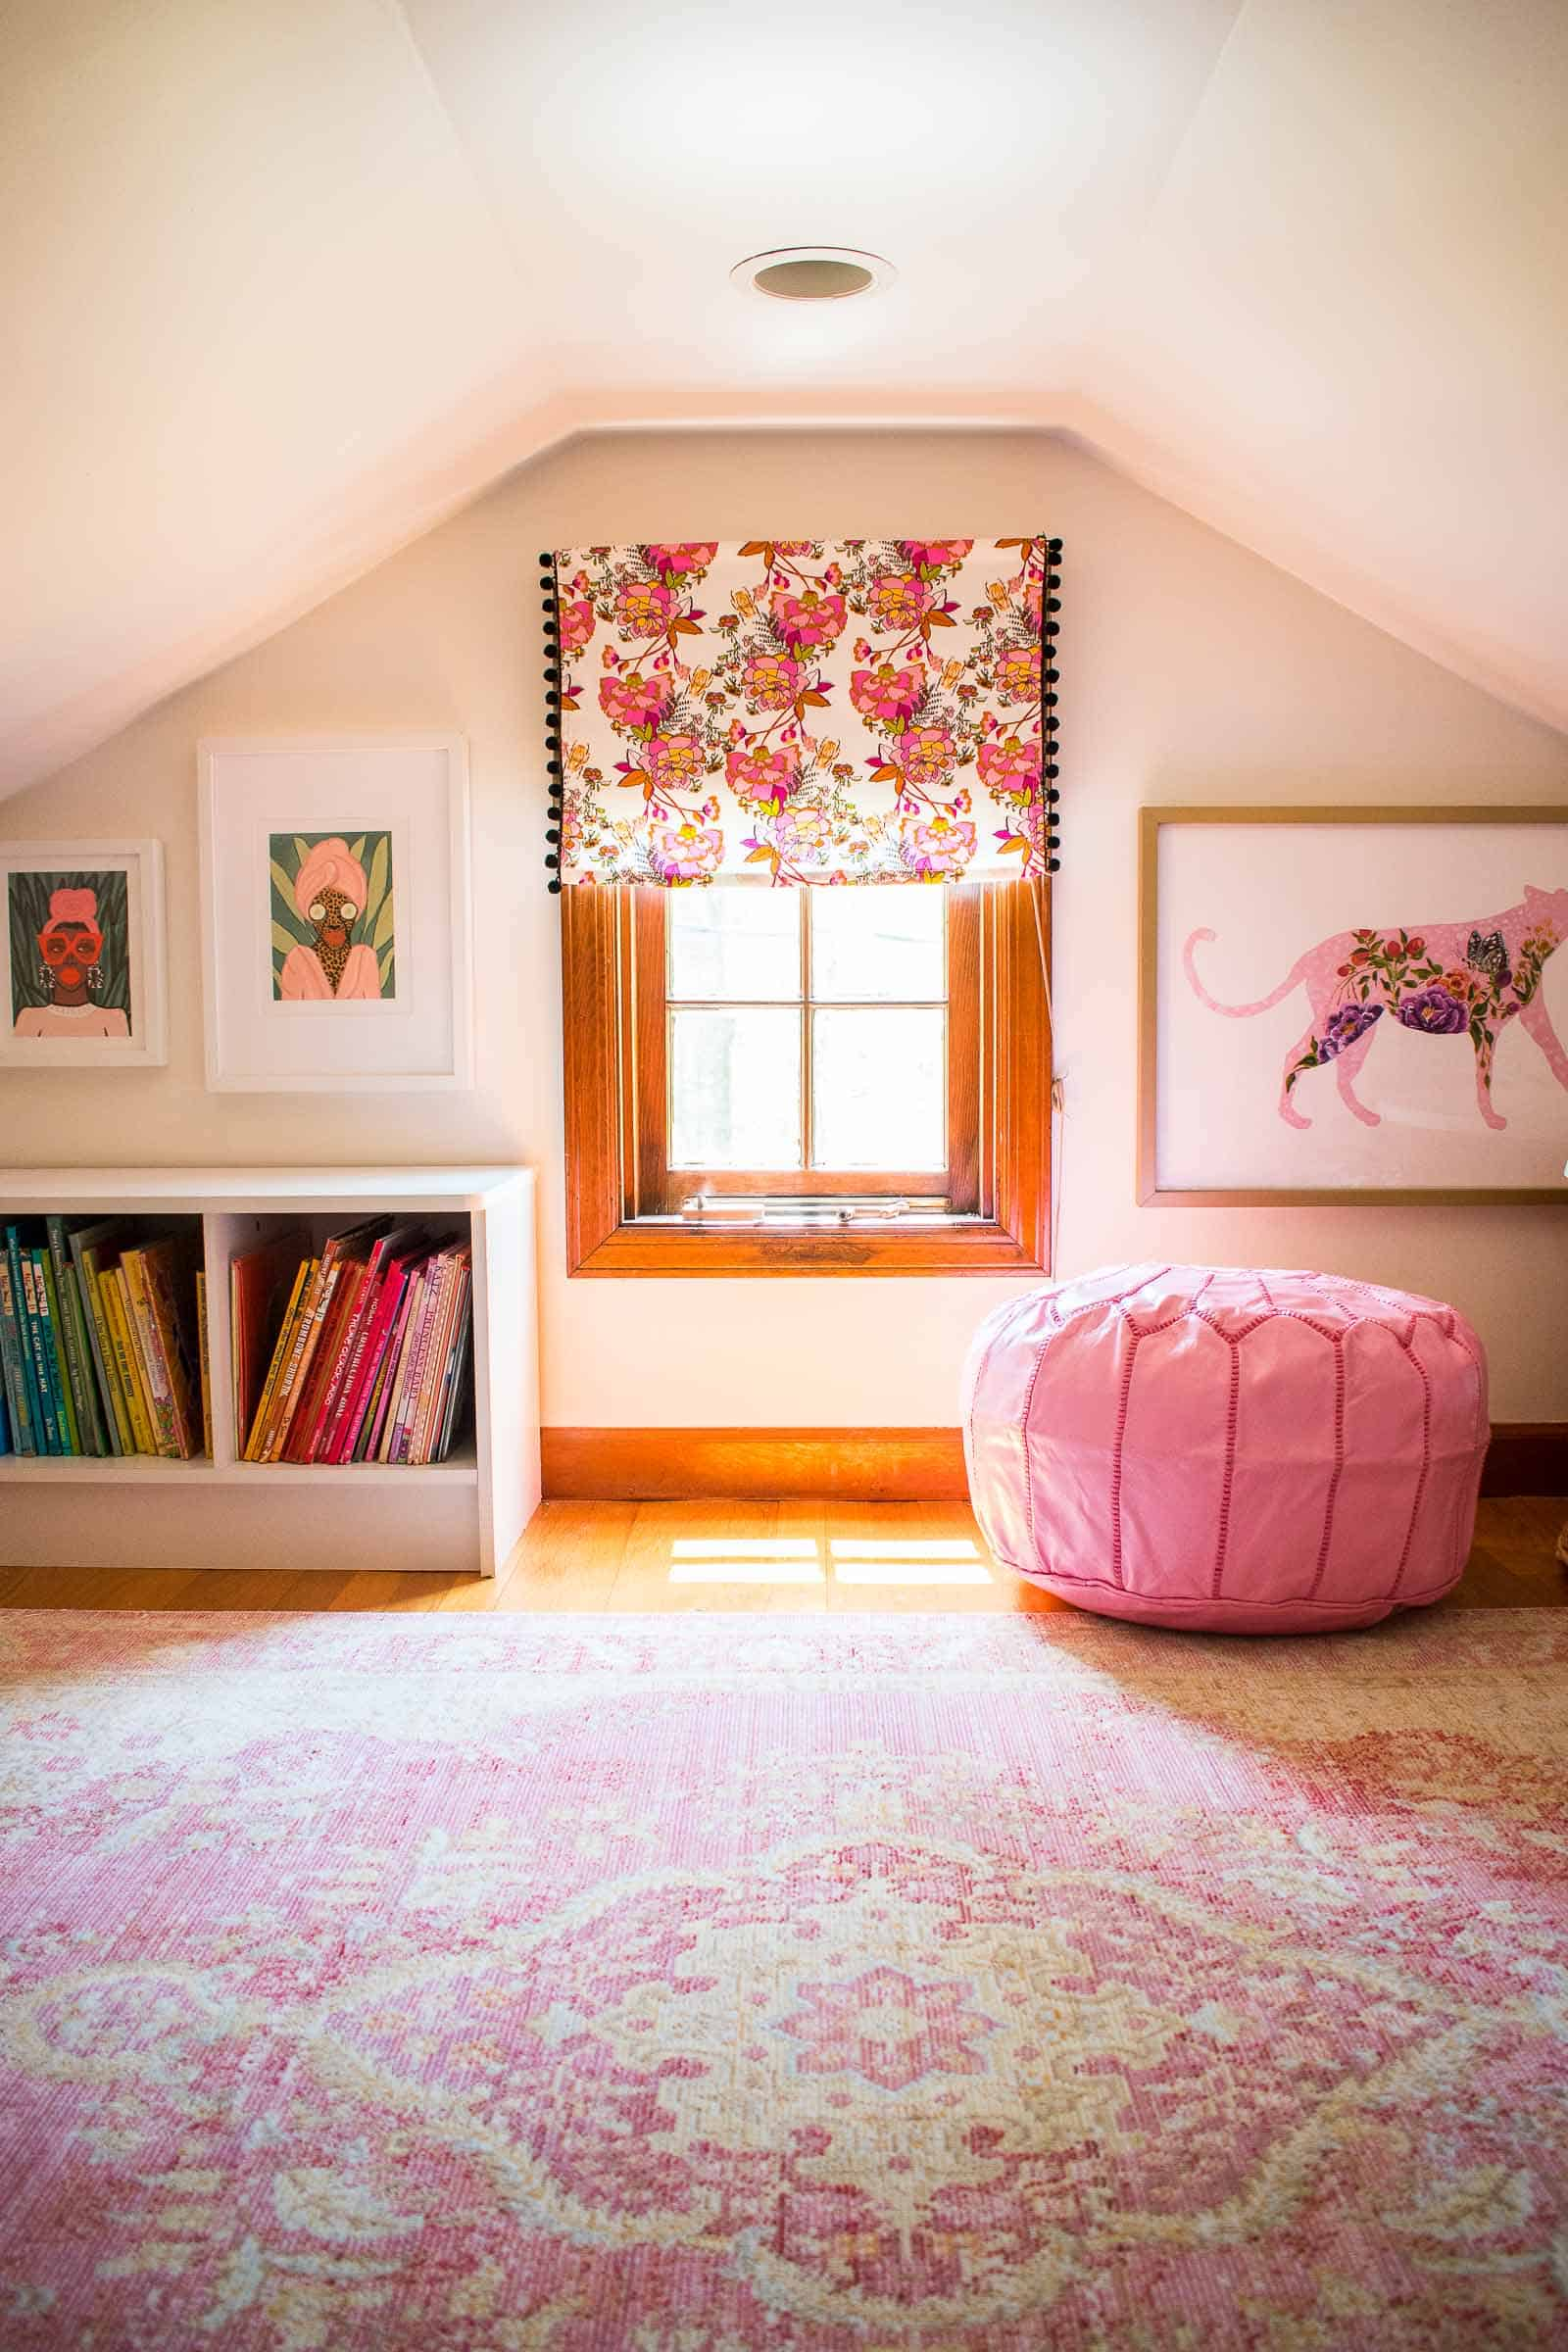 new valance in reading nook